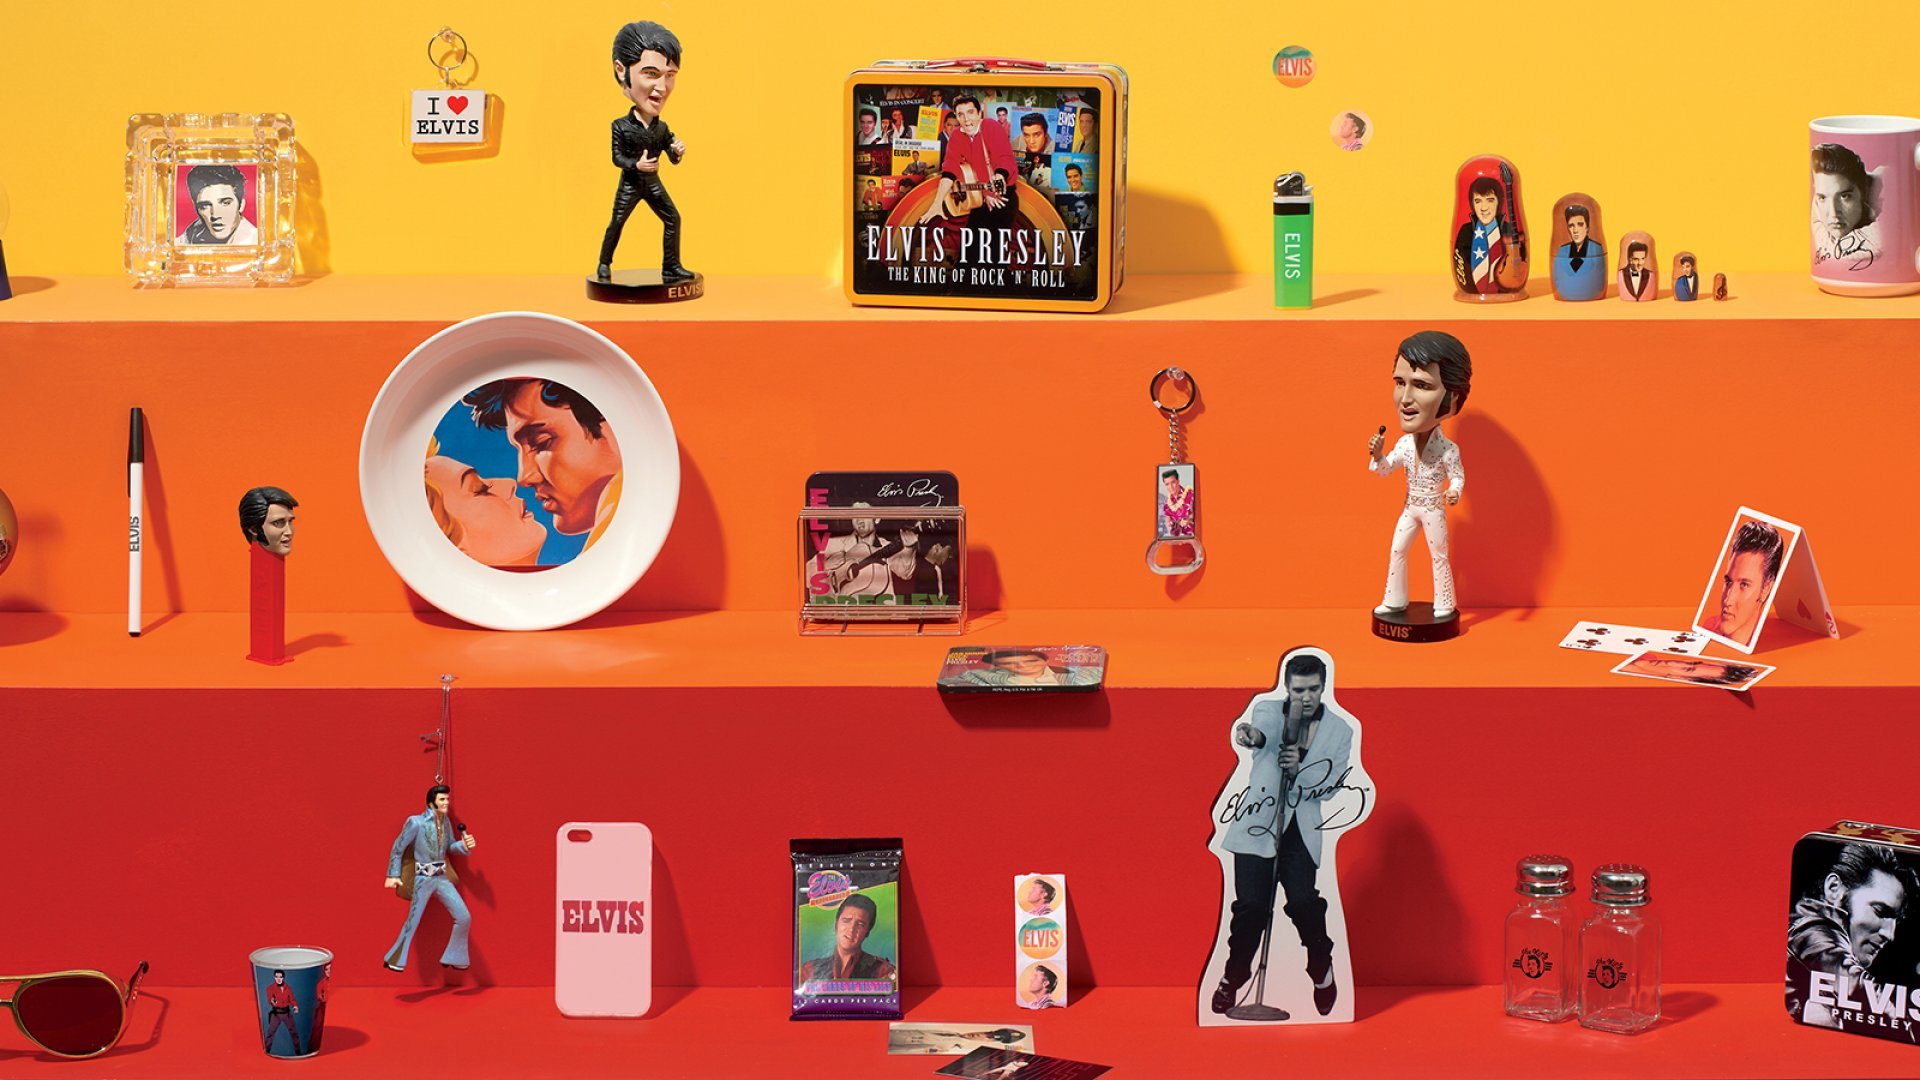 Elvis trinkets may seem ubiquitous, but his image is tightly controlled by Elvis Presley Enterprises, which manages IP for the Elvis Presley Trust.